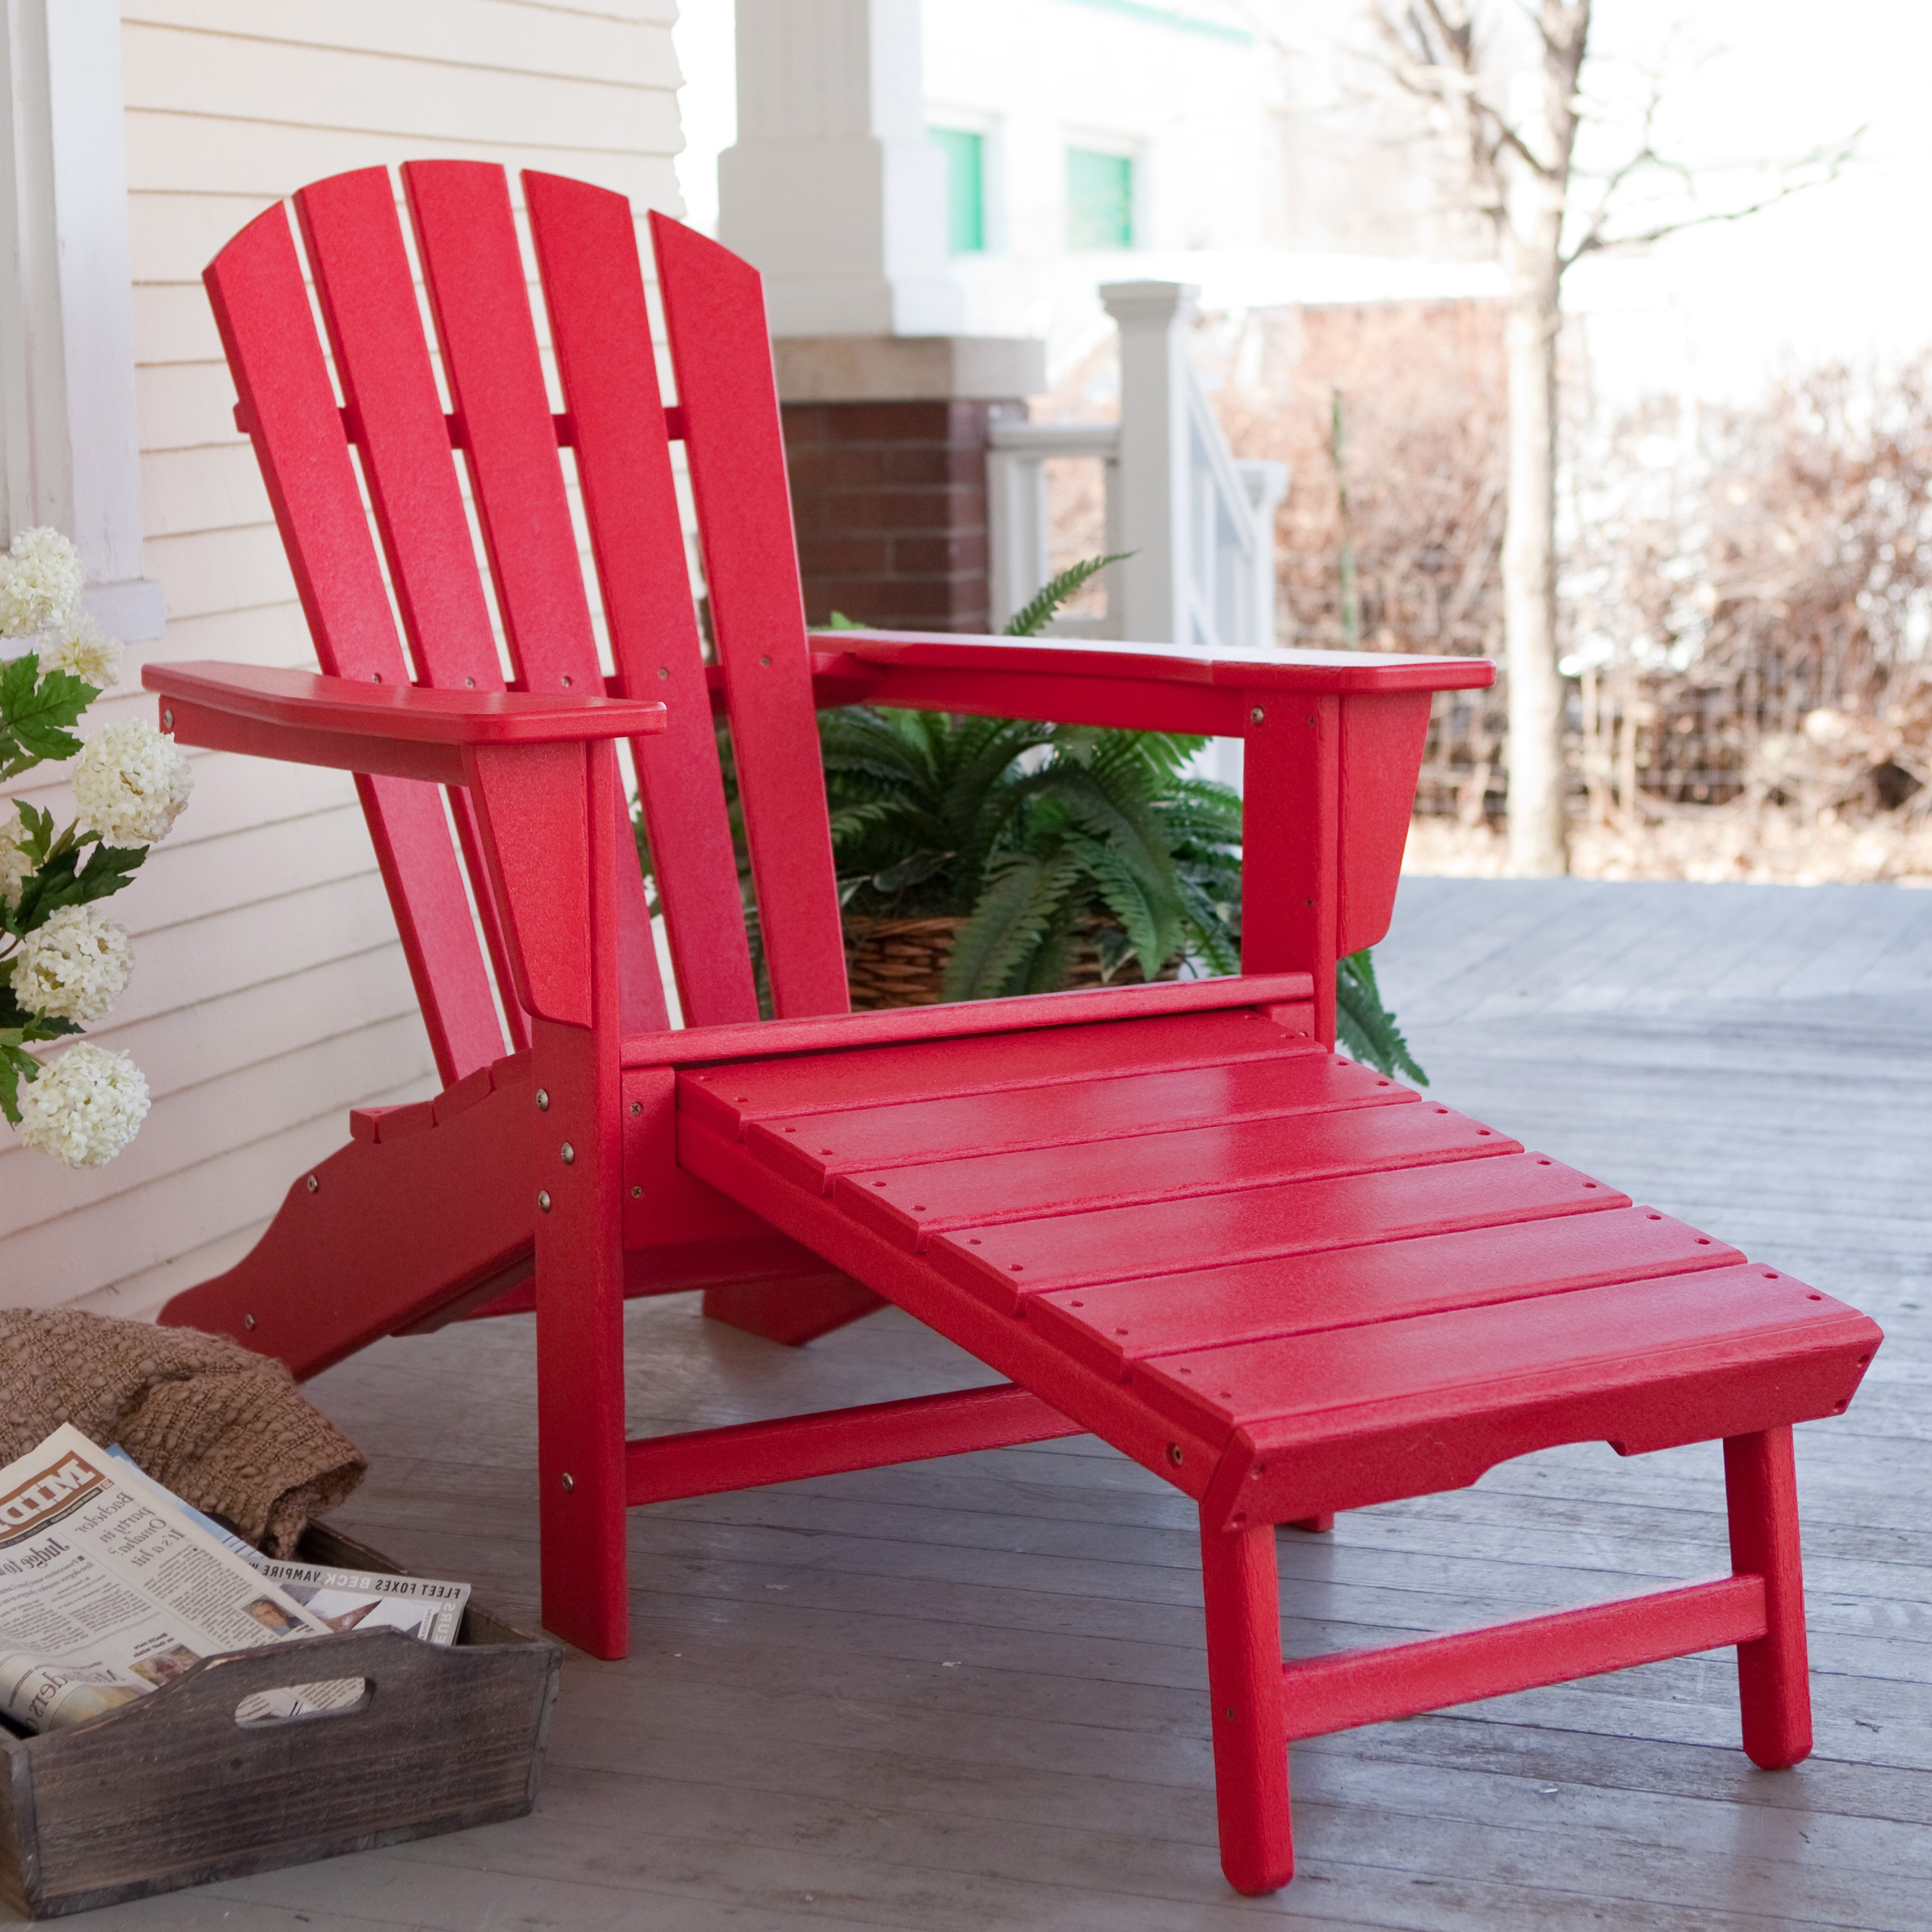 Plastic Adirondack Chairs With Ottoman.Polywood Recycled Plastic Big Daddy Adirondack Chair With Pull Out Ottoman